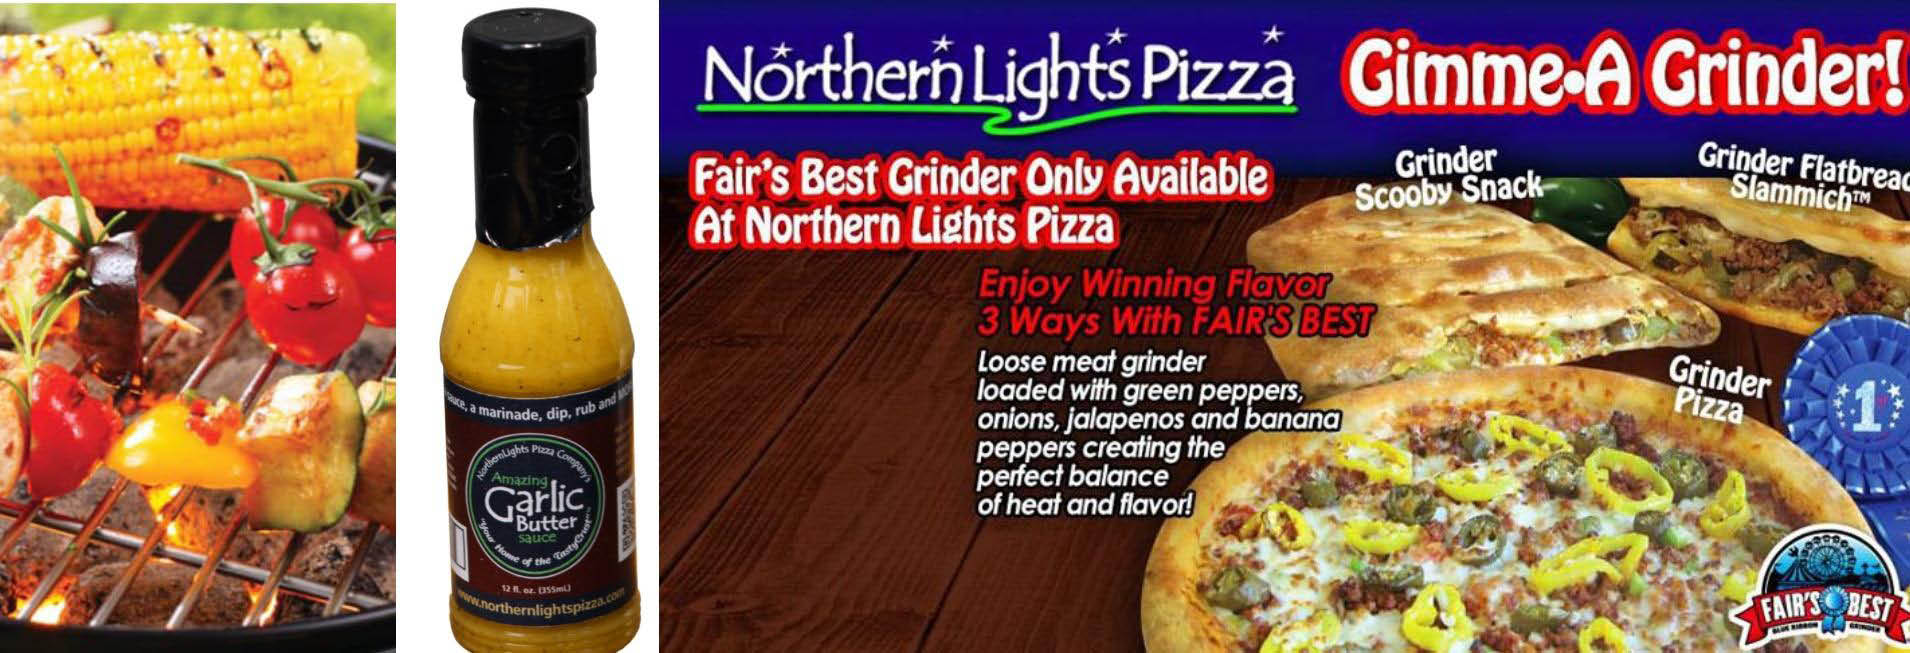 Northern Lights Pizza in Urbandale, Iowa banner